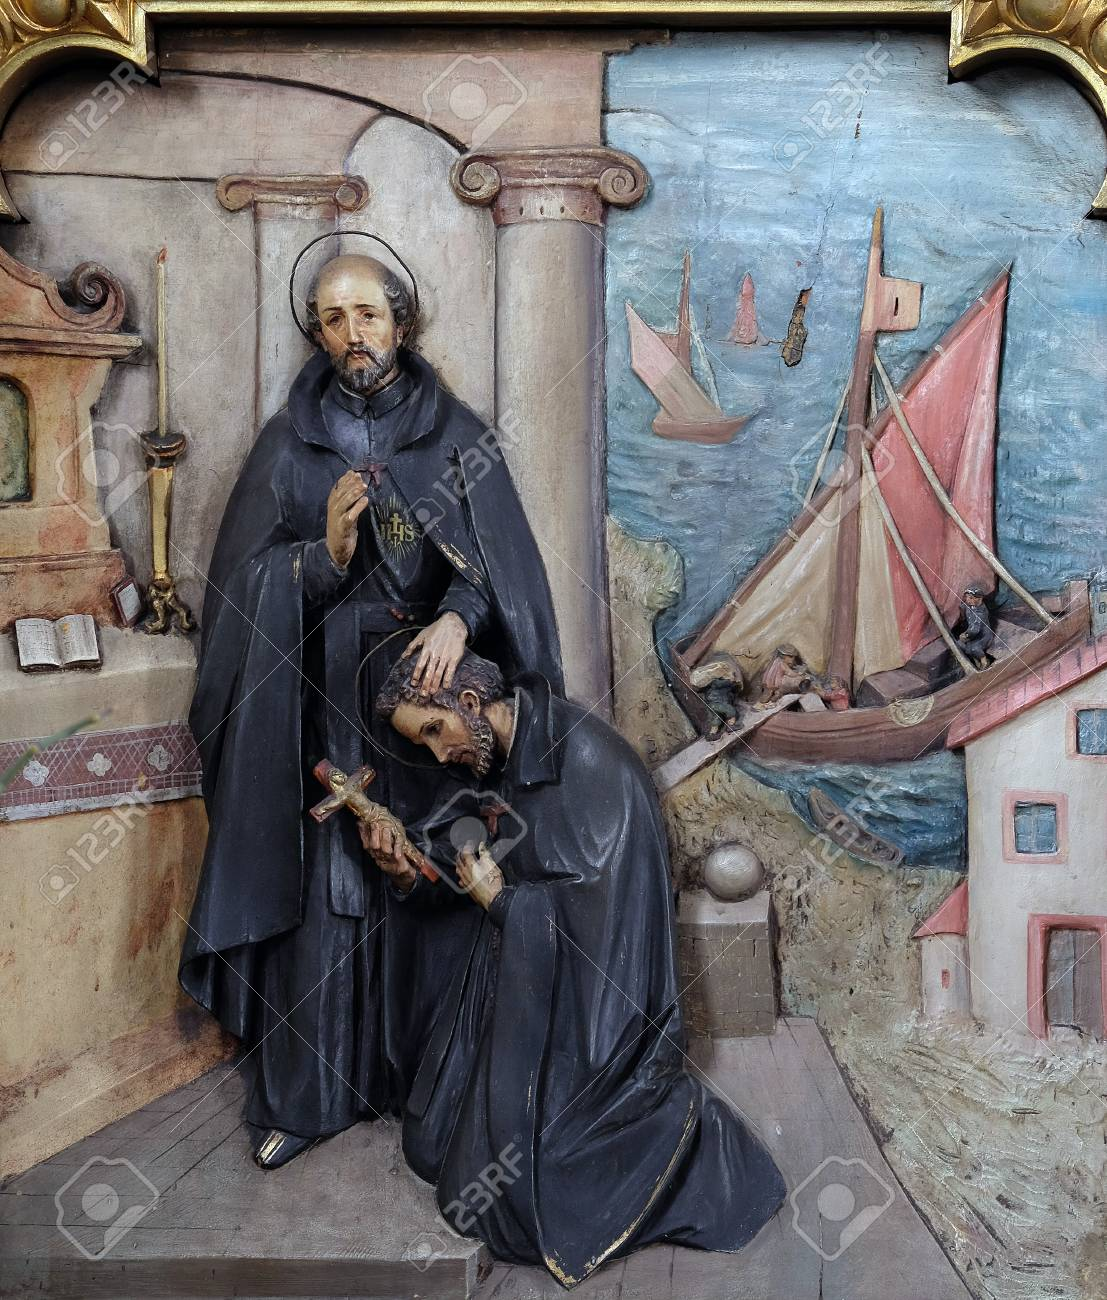 St.Ignatius sends St. Francis Xavier to the missions. Source: 123rf.com